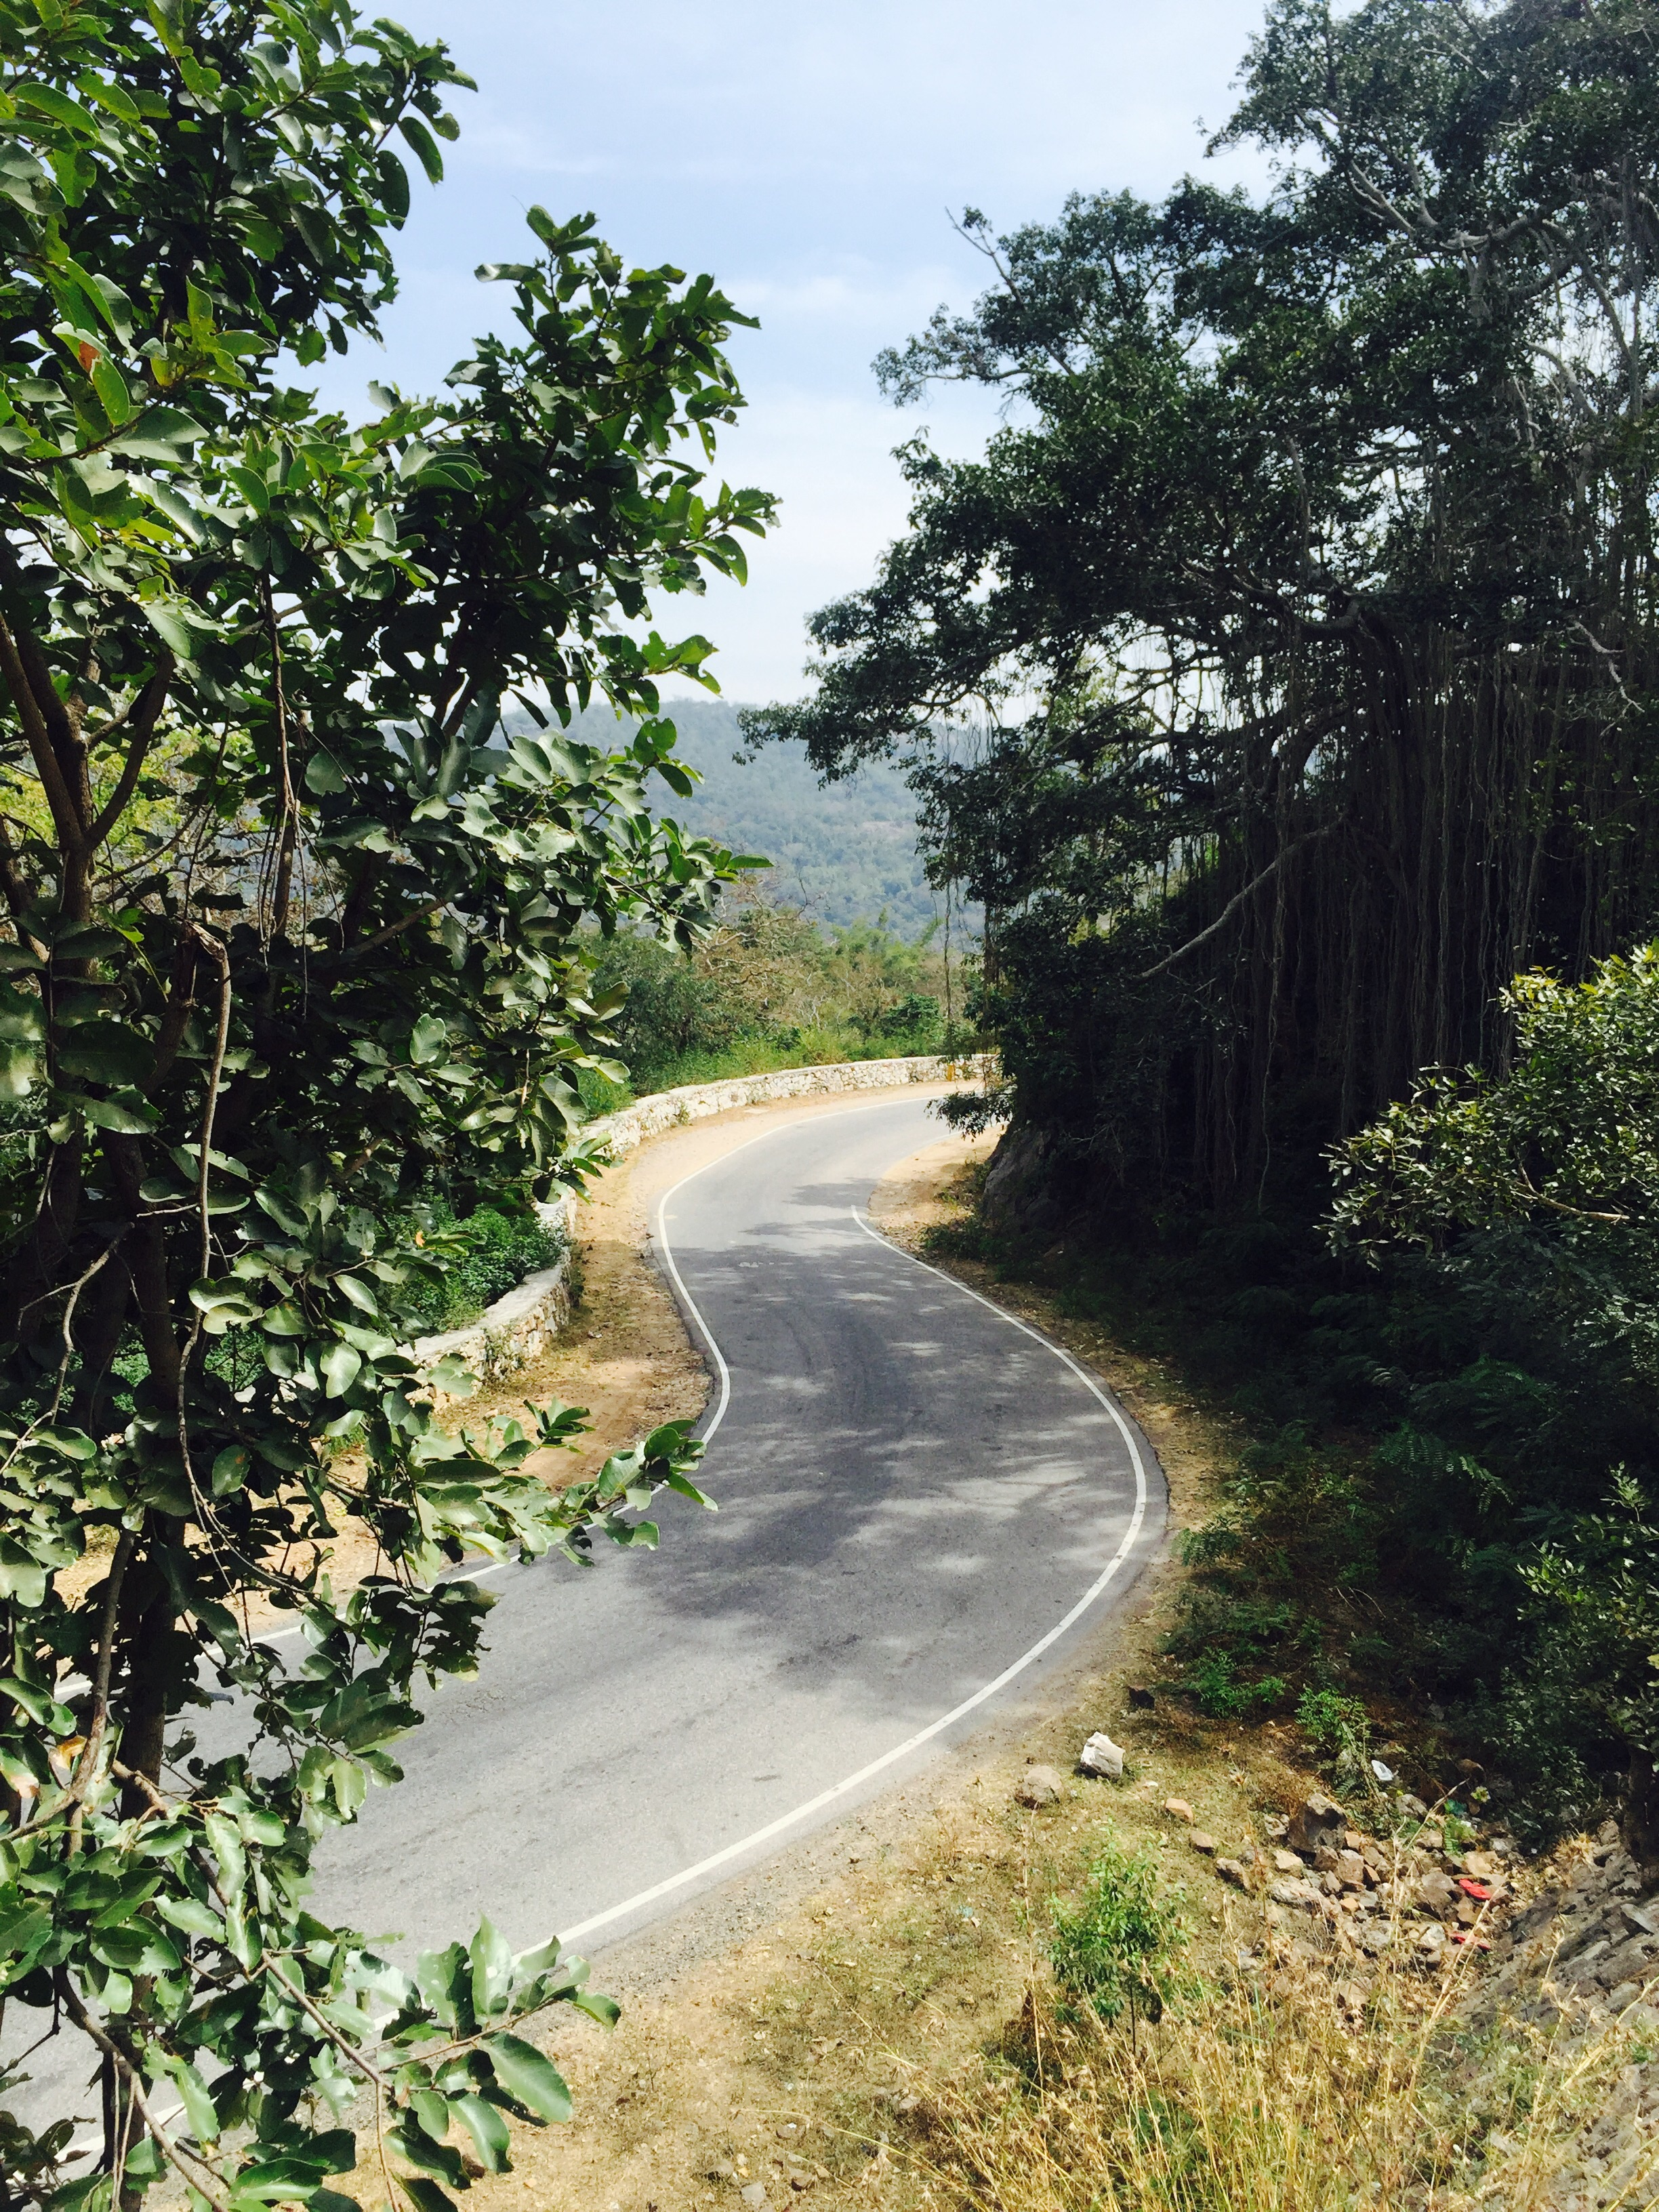 One of the 27 hairpin turns